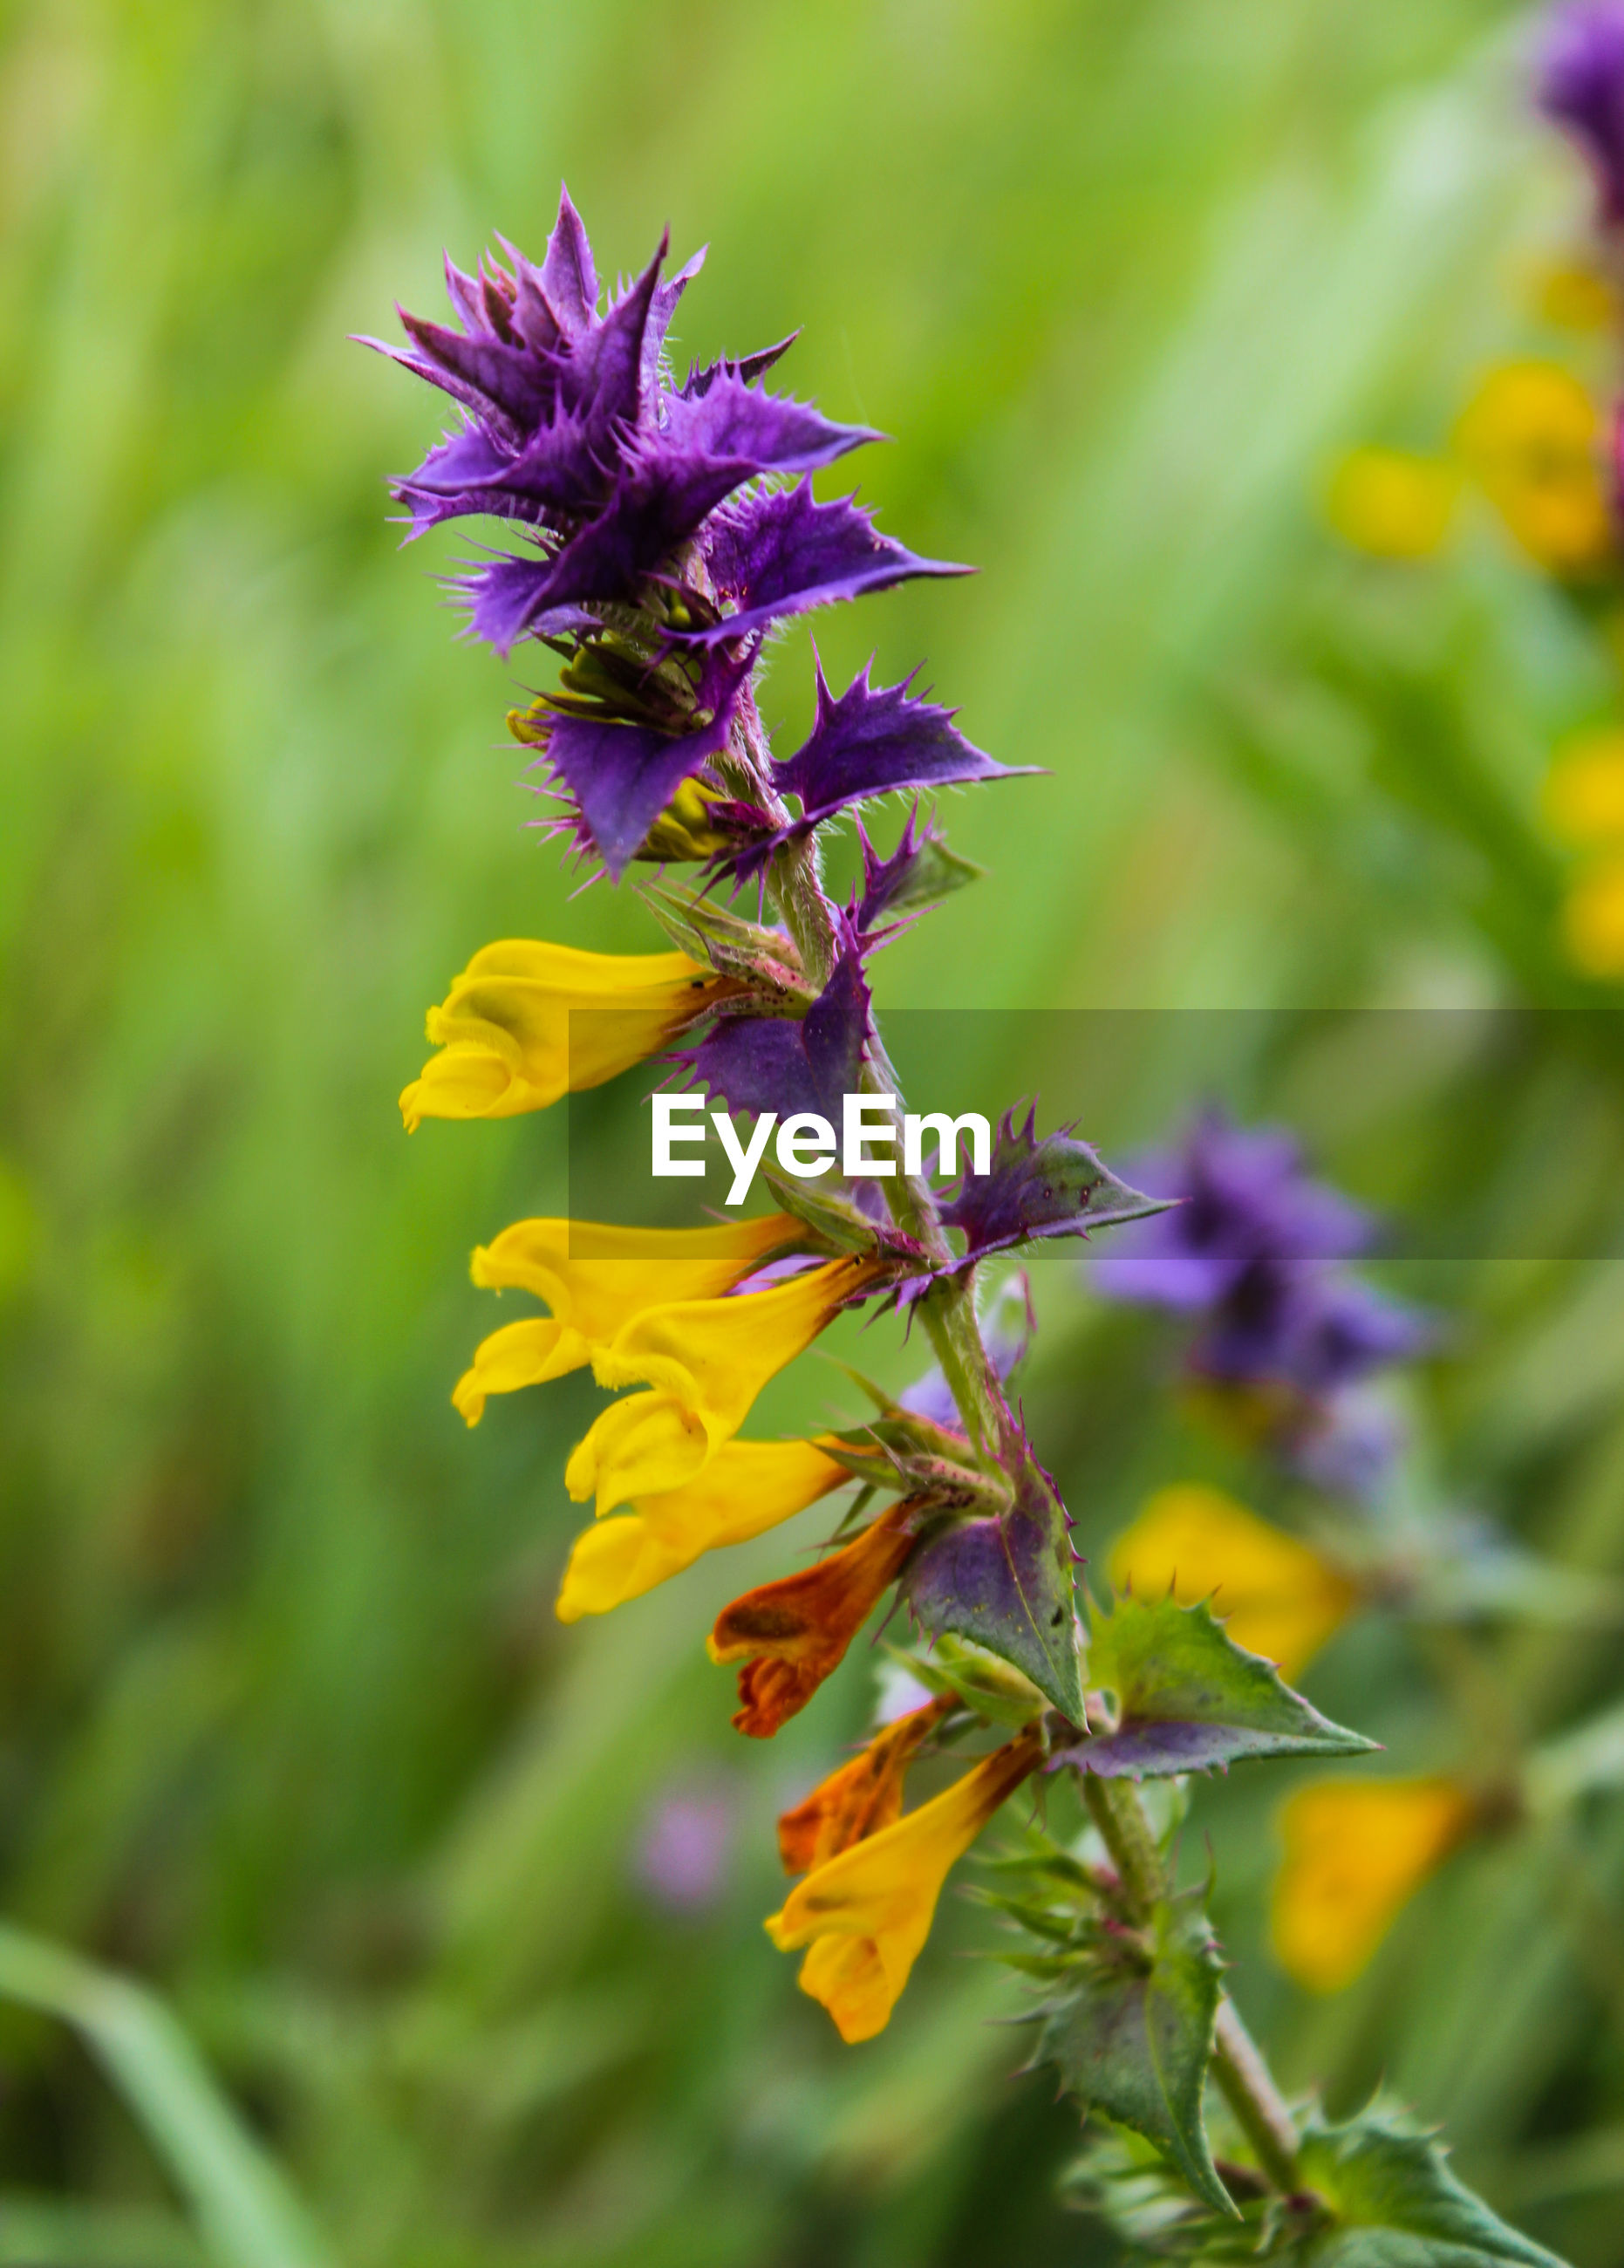 fragility, flower, freshness, growth, purple, yellow, beauty in nature, stem, close-up, petal, focus on foreground, nature, flower head, plant, botany, bud, vibrant color, in bloom, springtime, blossom, selective focus, day, outdoors, softness, no people, flowering plant, bloom, blooming, wildflower